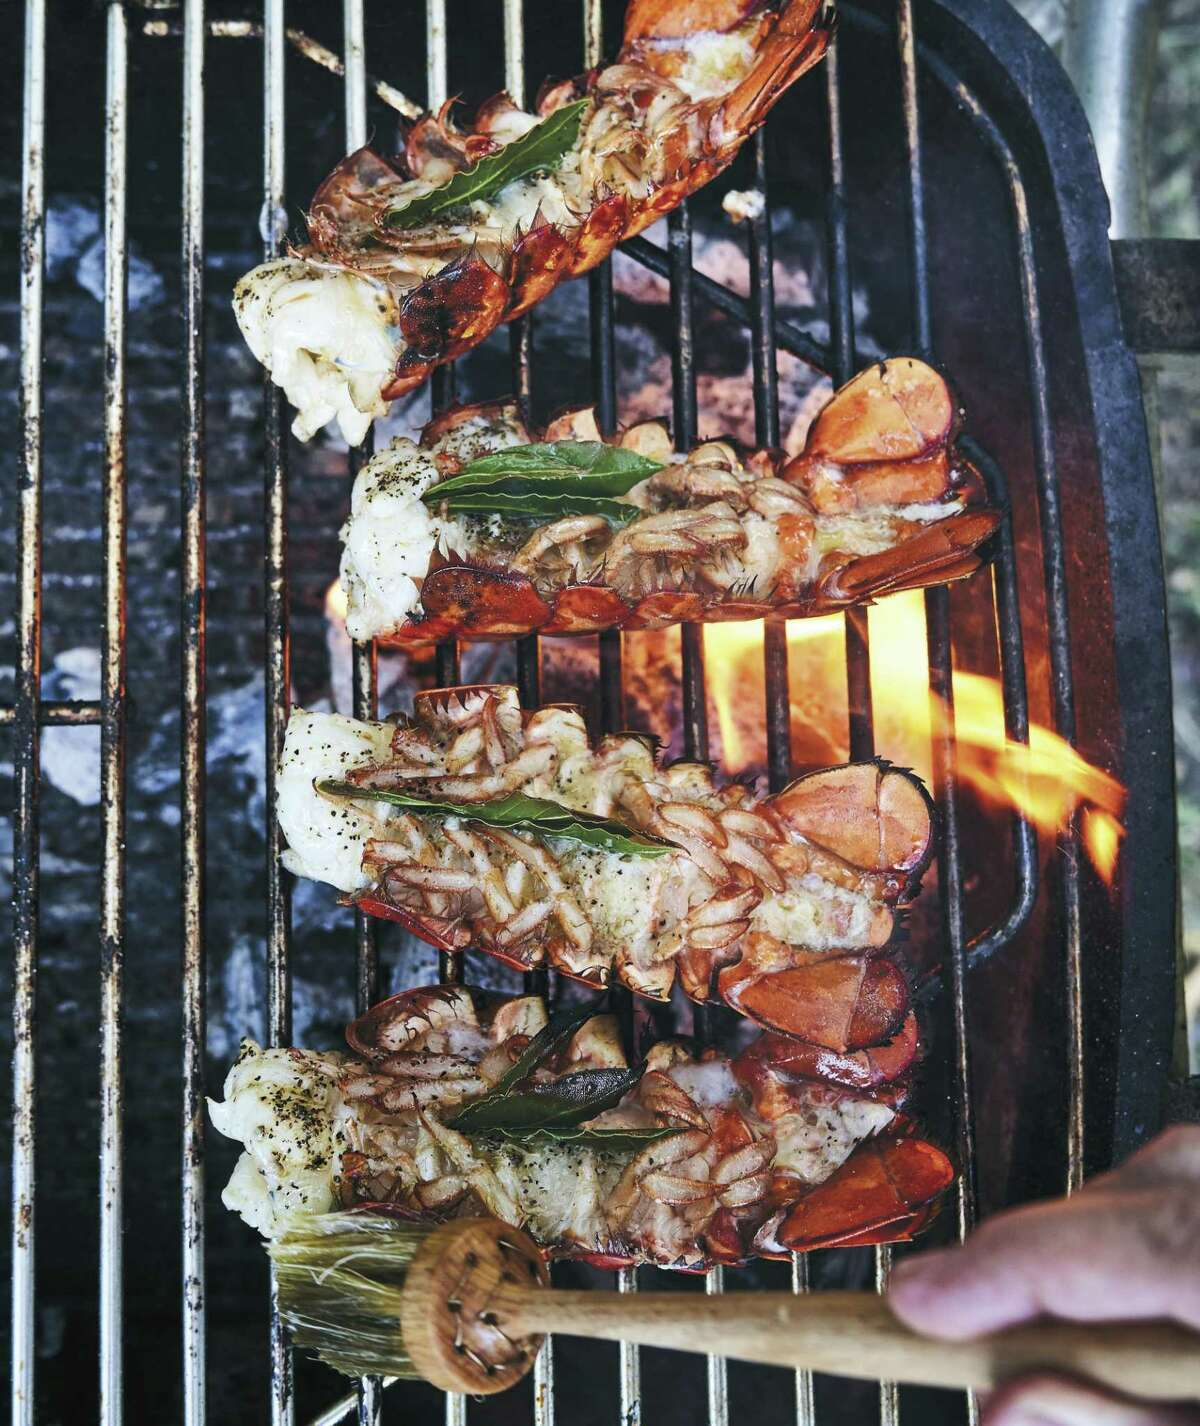 """Smoky Lobster Tails from""""Thank You for Smoking: Fun and Fearless Recipes Cooked with a Whiff of Wood Fire on Your Grill or Smoker"""" by Paula Disbrowe (Ten Speed Press, $30)."""